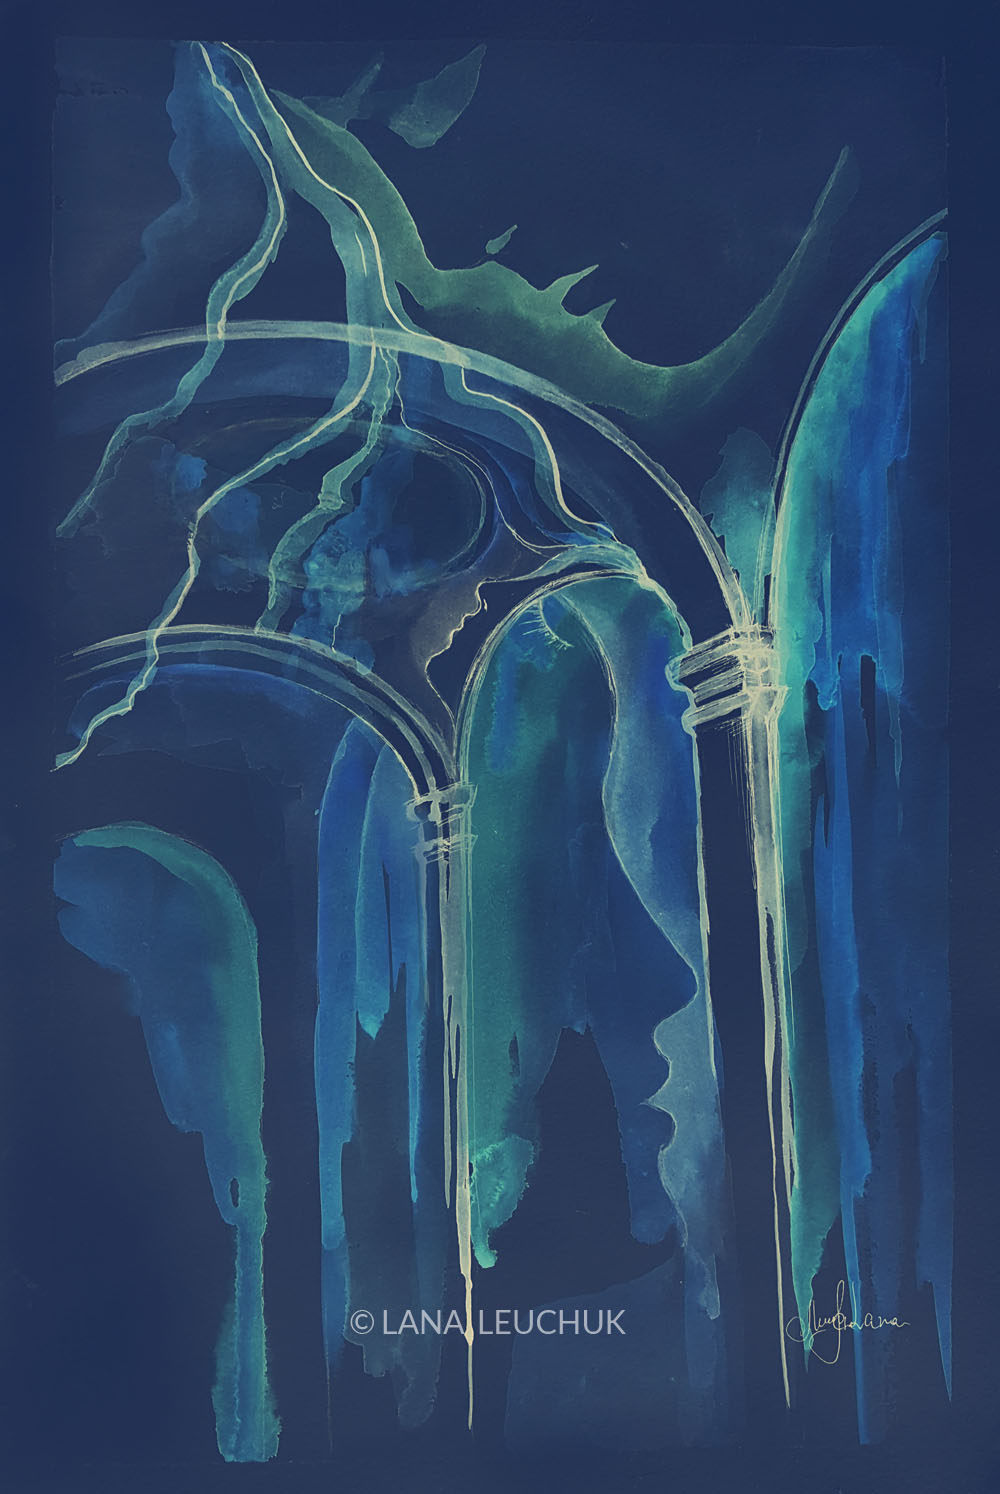 artwork-by-Lana-Leuchuk-arches-and-faces-blue-sm